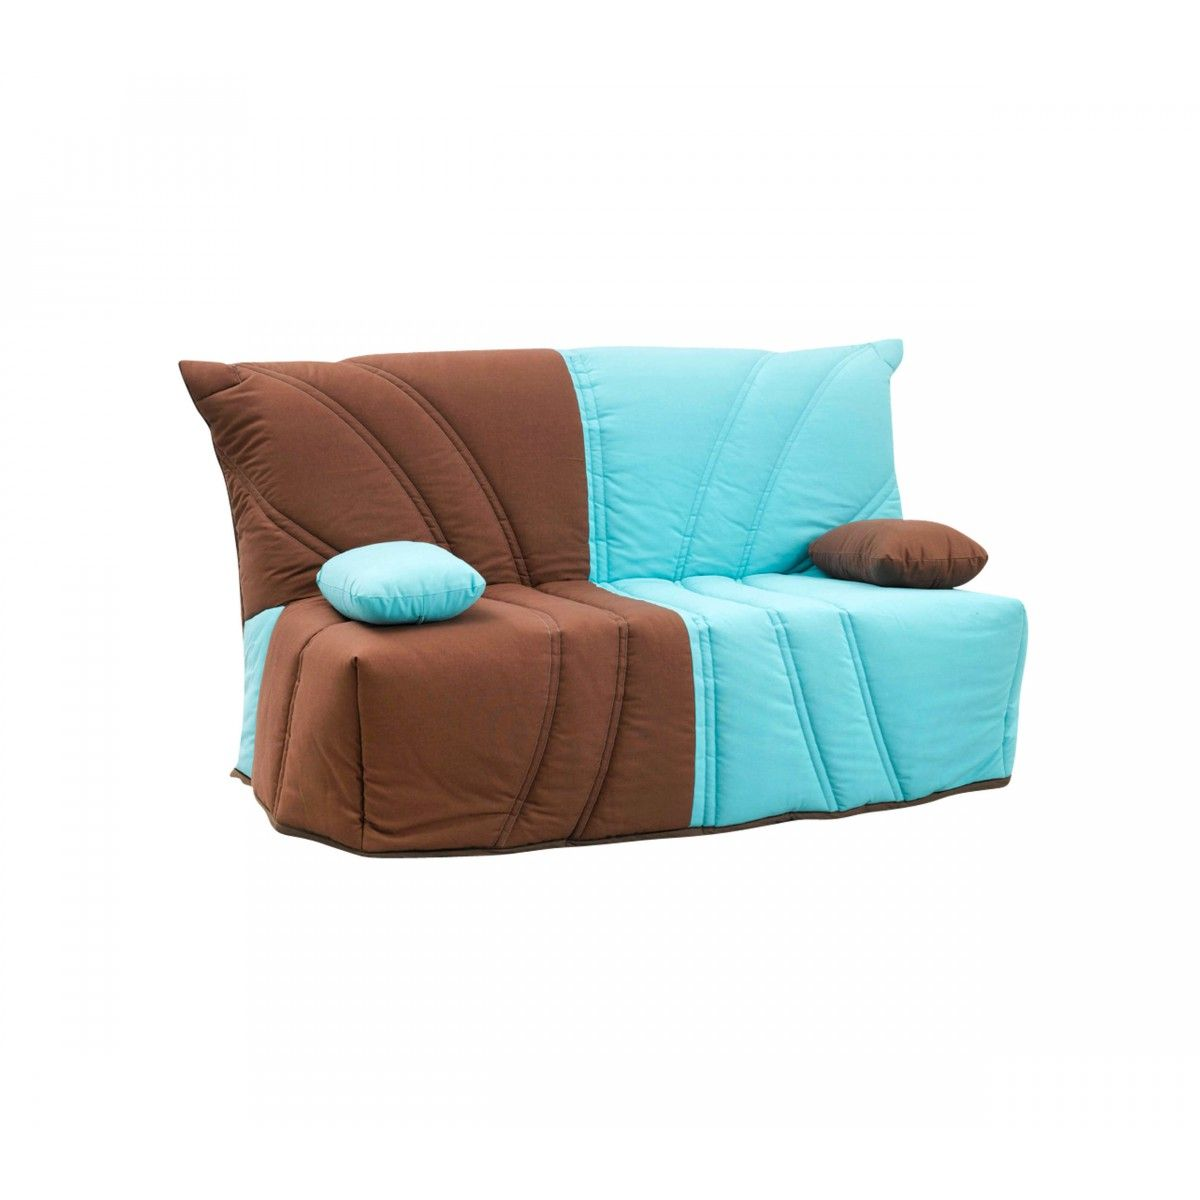 Housse de clic clac matelassee topiwall for Housse canape bz